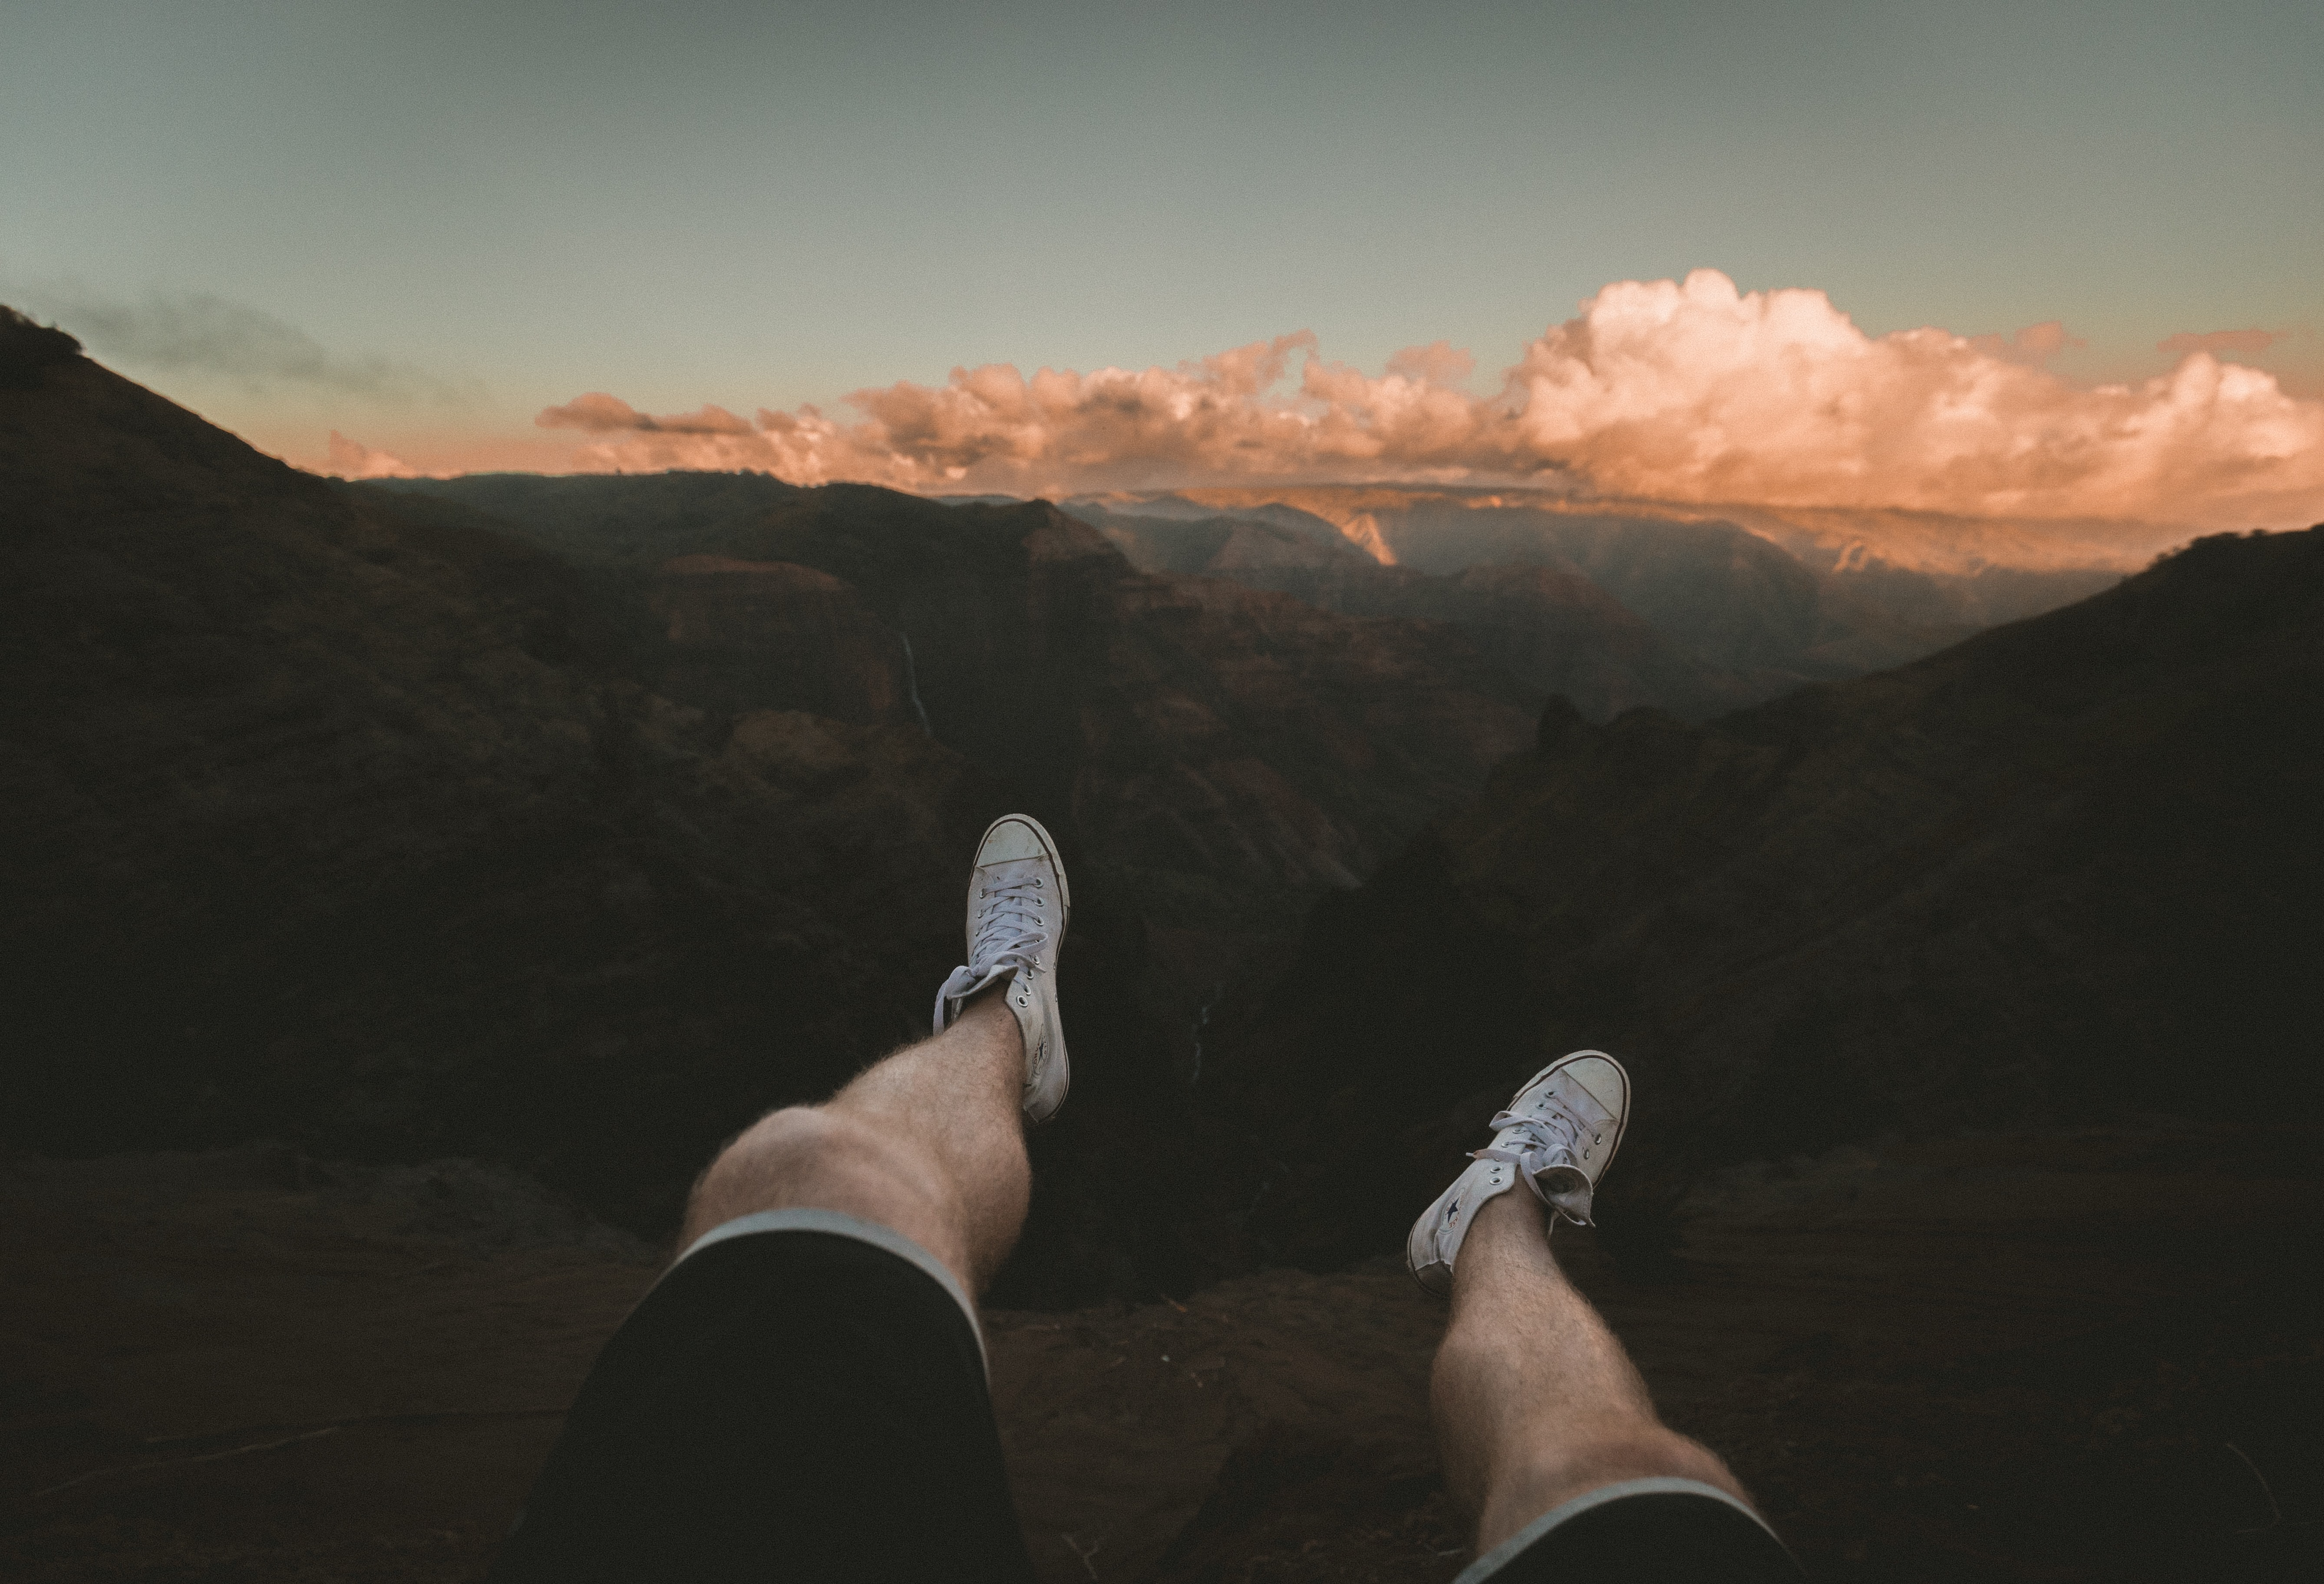 Legs outstretched into a mountain canyon at sunset